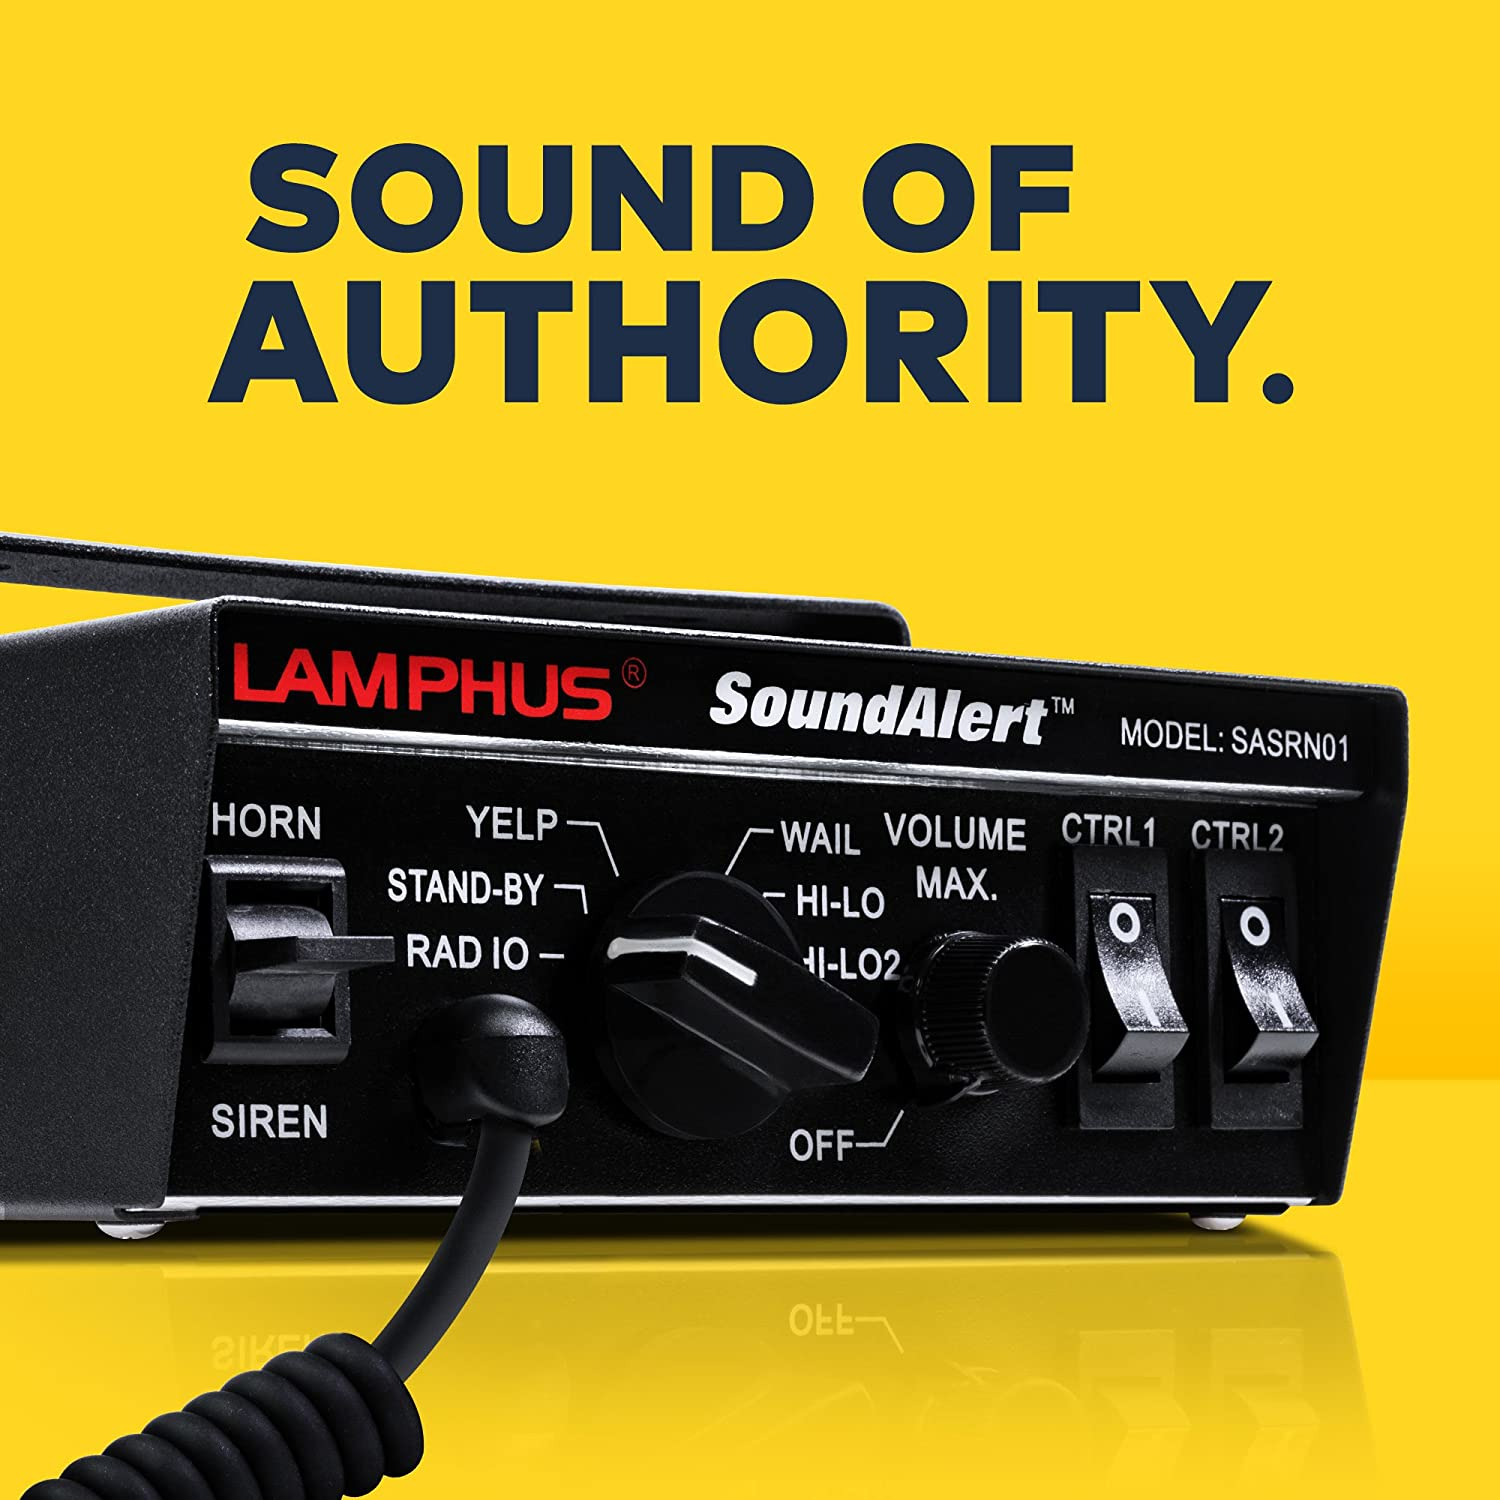 Lamphus Soundalert Siren Speaker Pa System 100w 6 Carbon Microphone To Magnetic Mike Mic Converter Circuit Modes Heavy Duty 120 130db Hands Free Dual 20a Switches Emergency